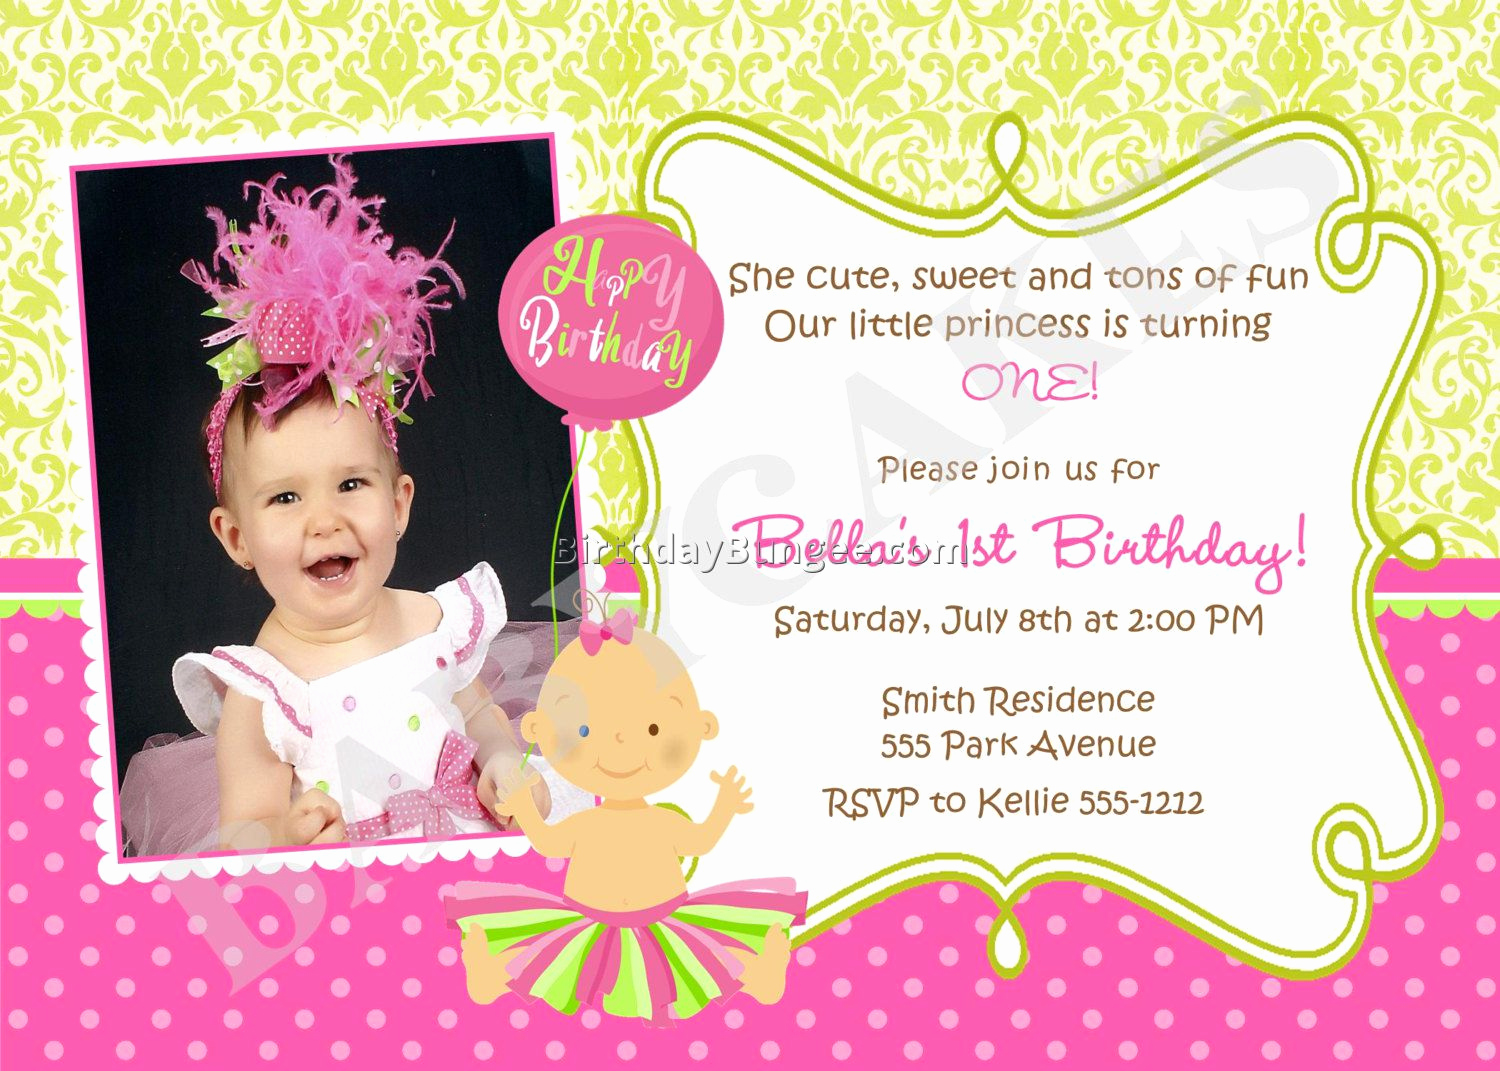 18th Birthday Invitation Ideas Elegant Birthday Invitation Wording Ideas — Birthday Invitation